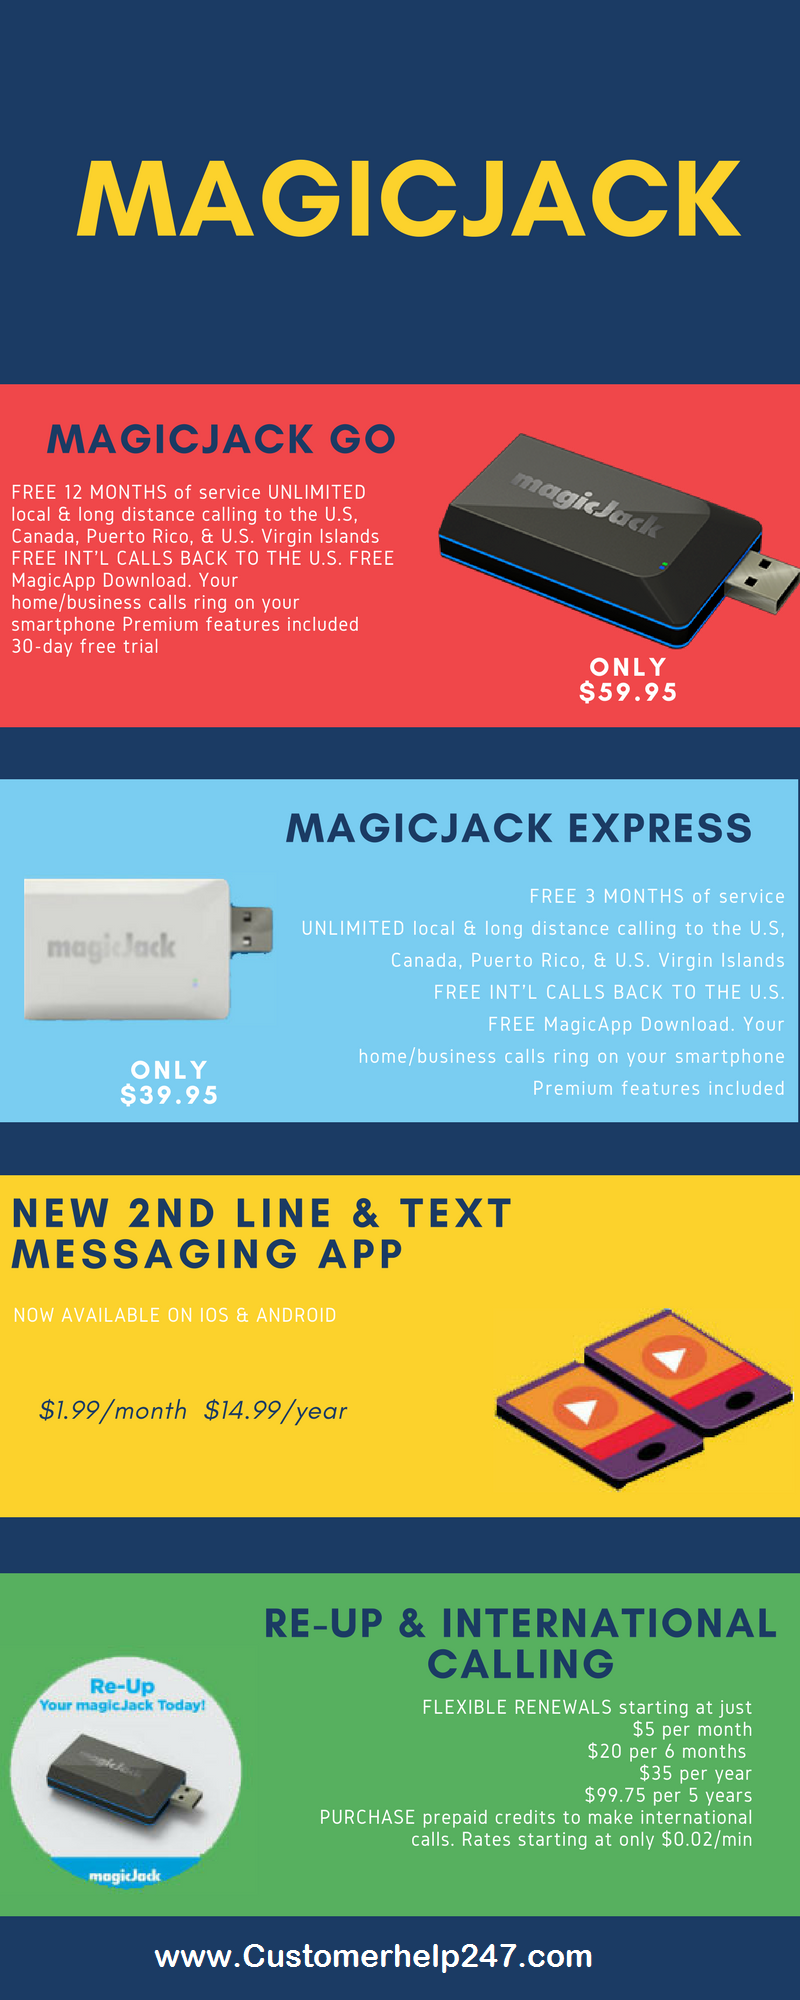 How To Get A Magicjack Phone Number On Iphone